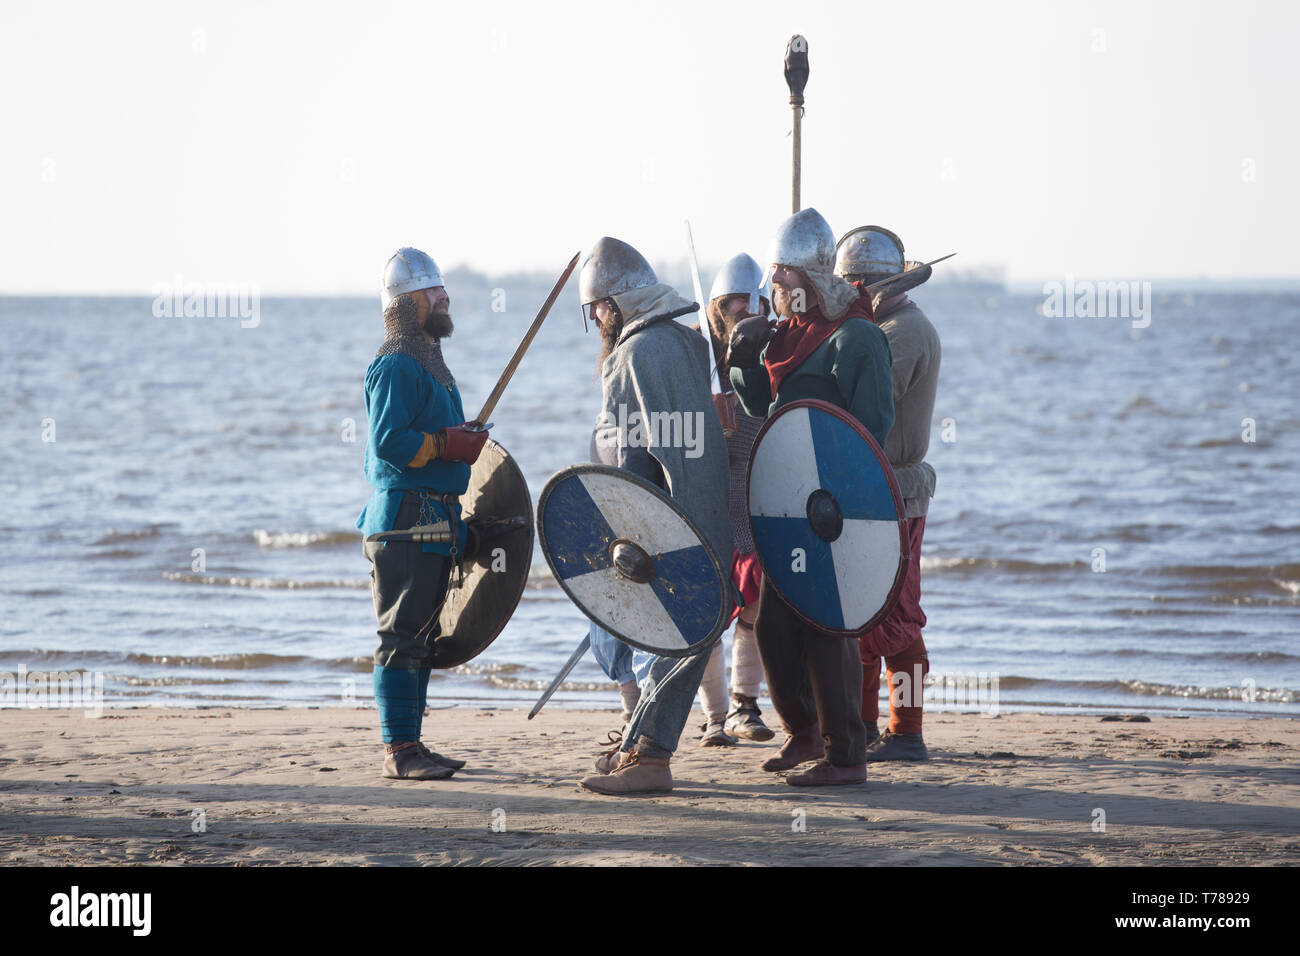 Slavic warriors reenactors with wearpons and shields getting ready for training outdoors at seaside - Stock Image